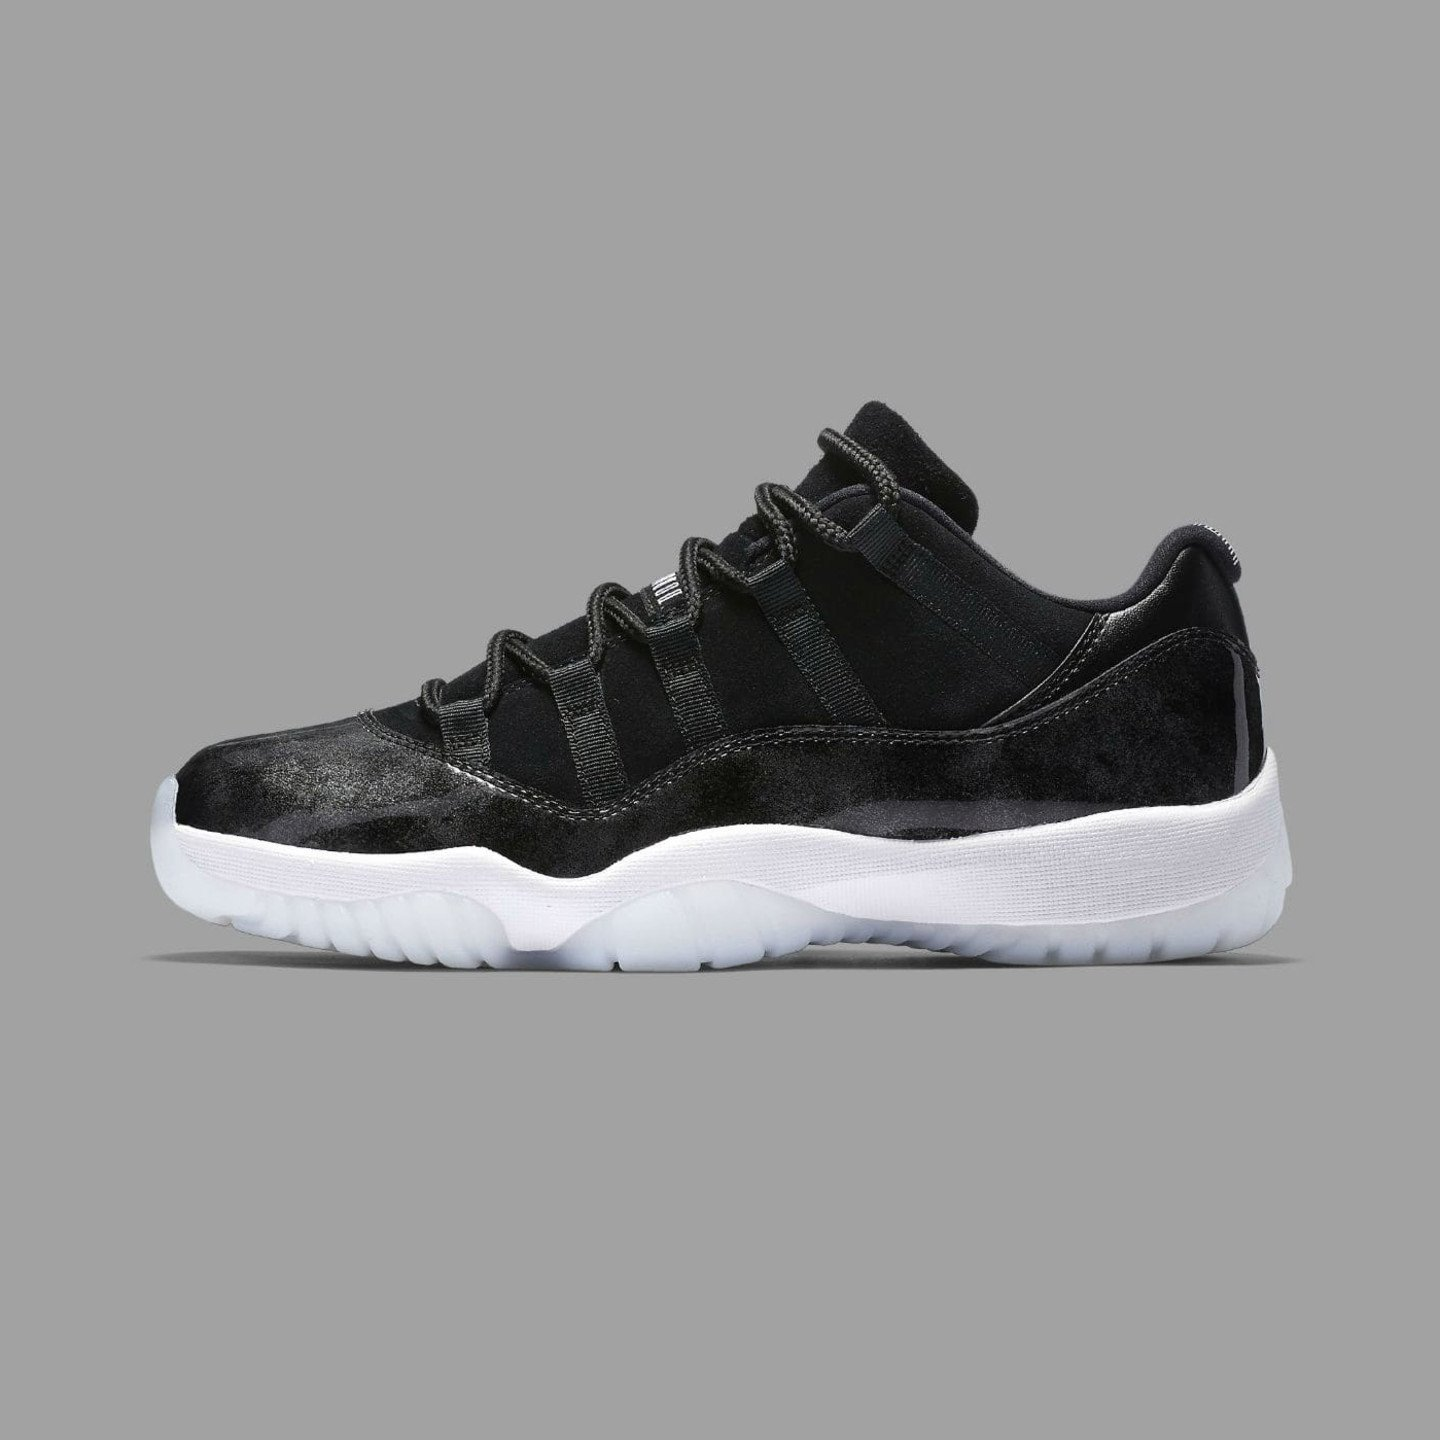 Jordan Air Jordan 11 Retro Low 'Barons' Black / White / Metallic Silver 528895-010